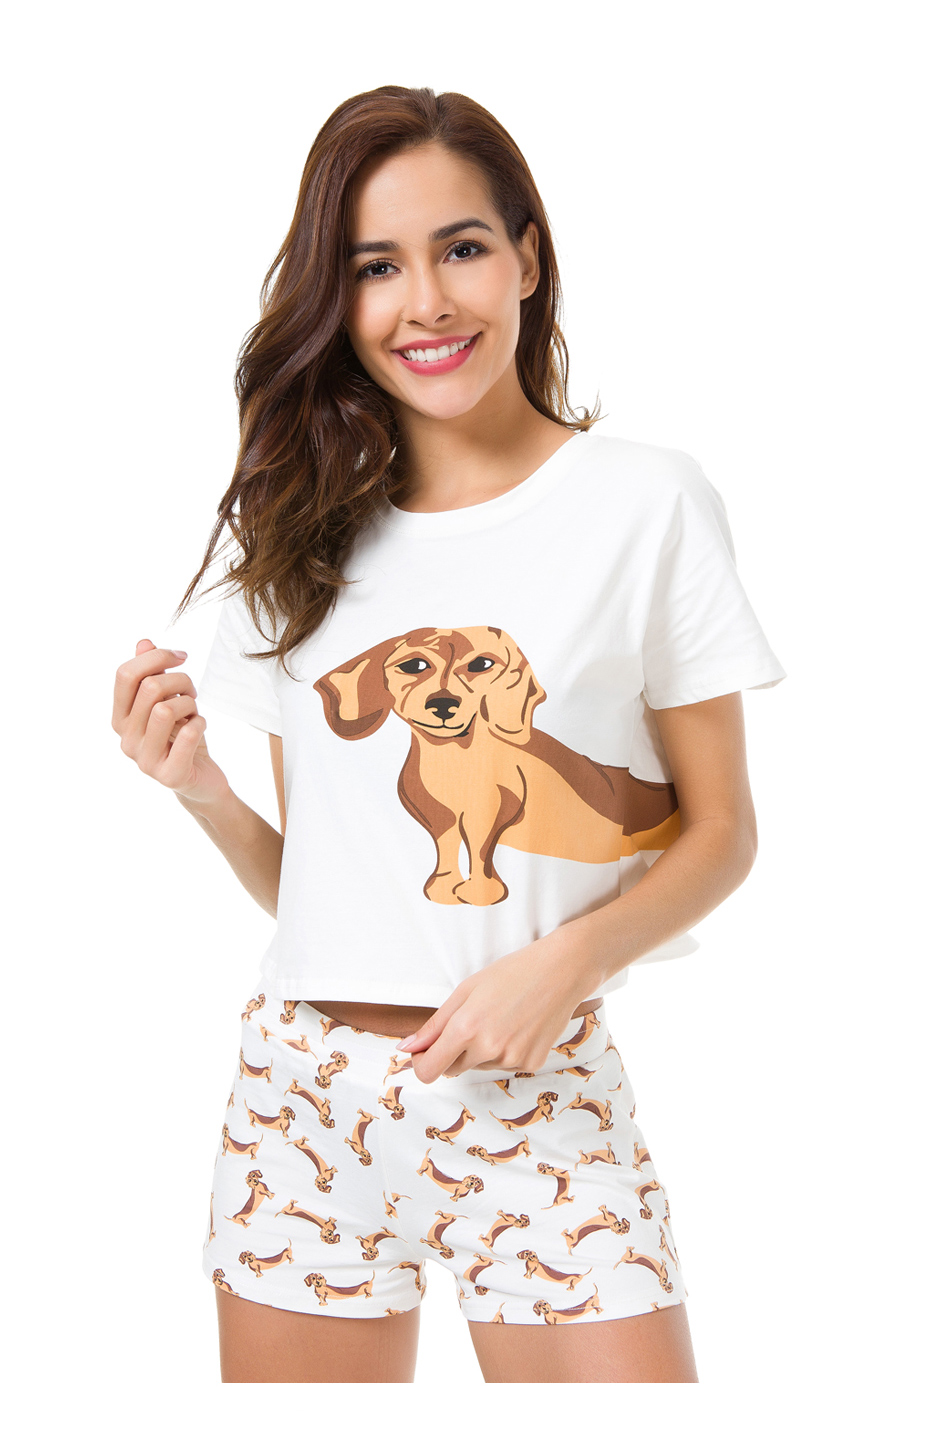 description expanded    Collapse     See more   . Similar products. See  more · Women s Corgi Pug Dog Print Sets 2 Pieces Pajama Suits Crop Top +  Shorts ... 2ec786b54